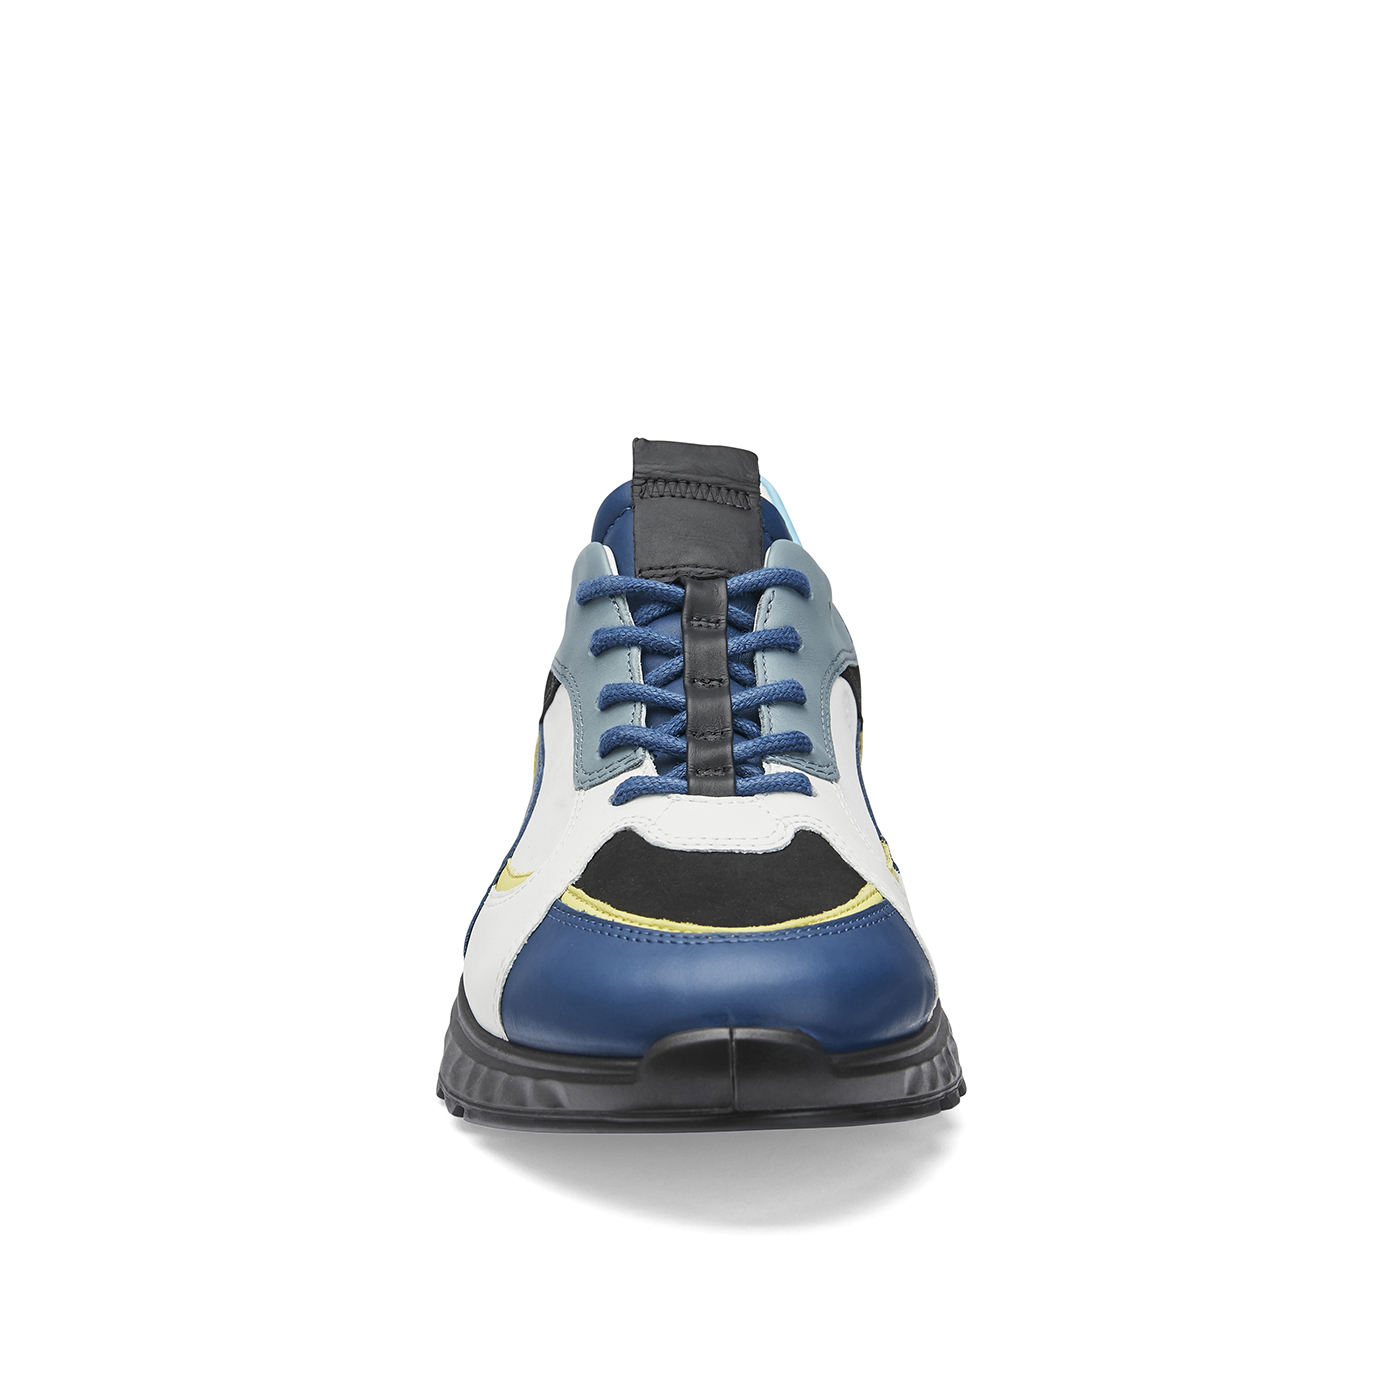 ECCO ST.1 Mens Multicolor Sneaker Tannery Exclusives Collection